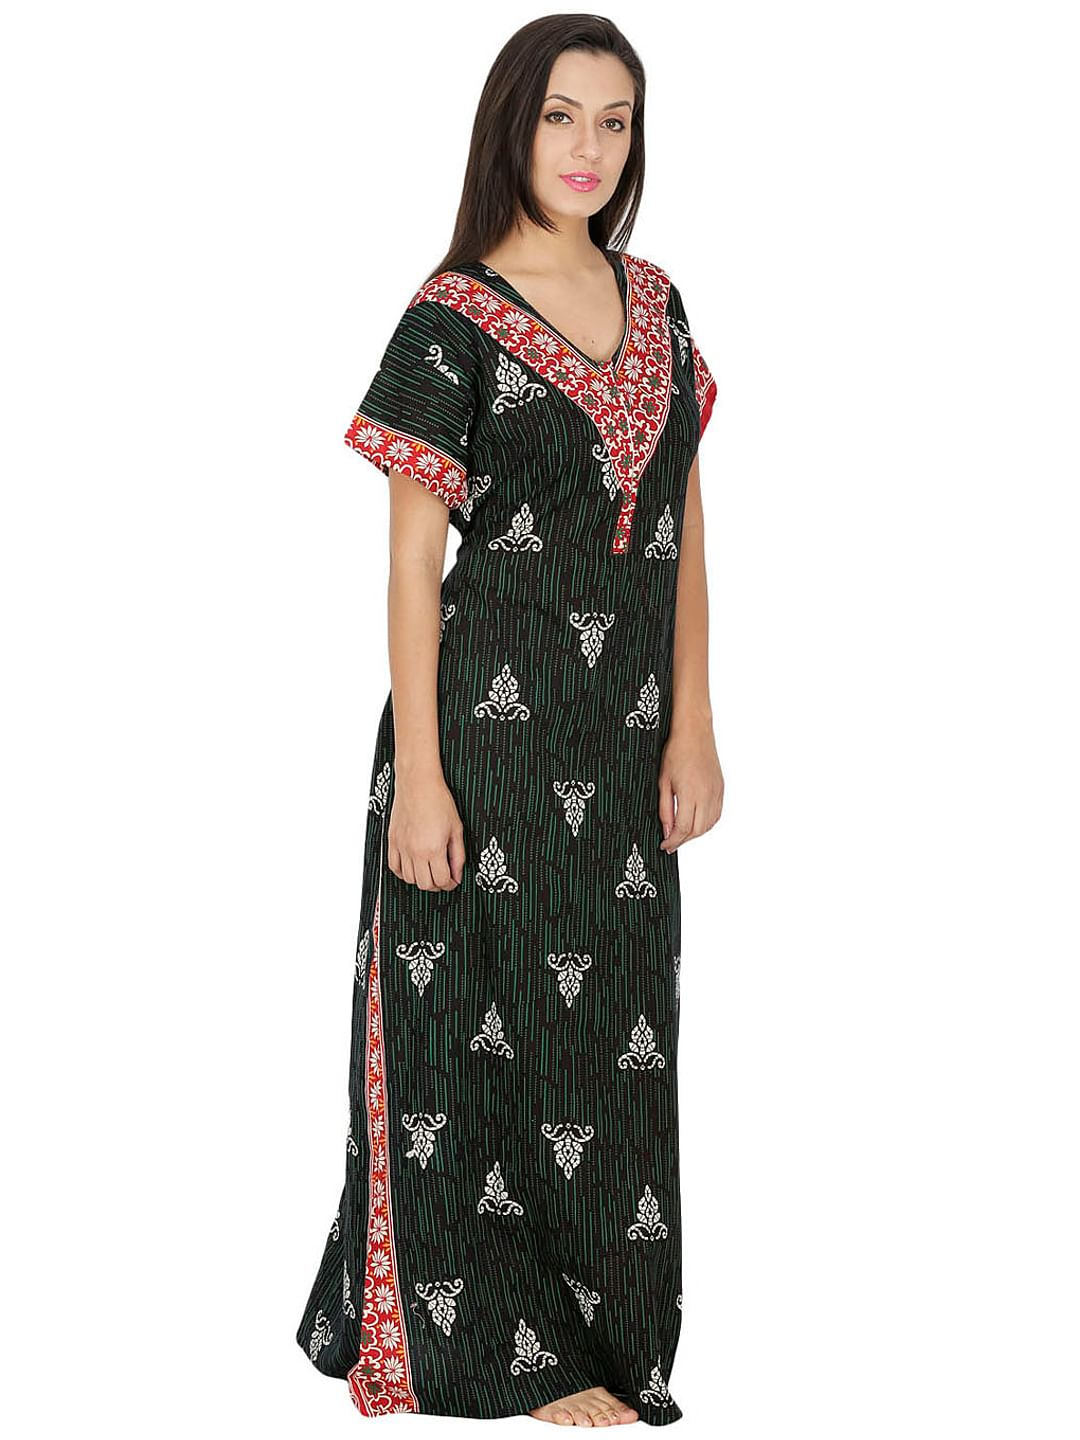 Secret Wish Women's Green Cotton Printed Maxi Nightdress